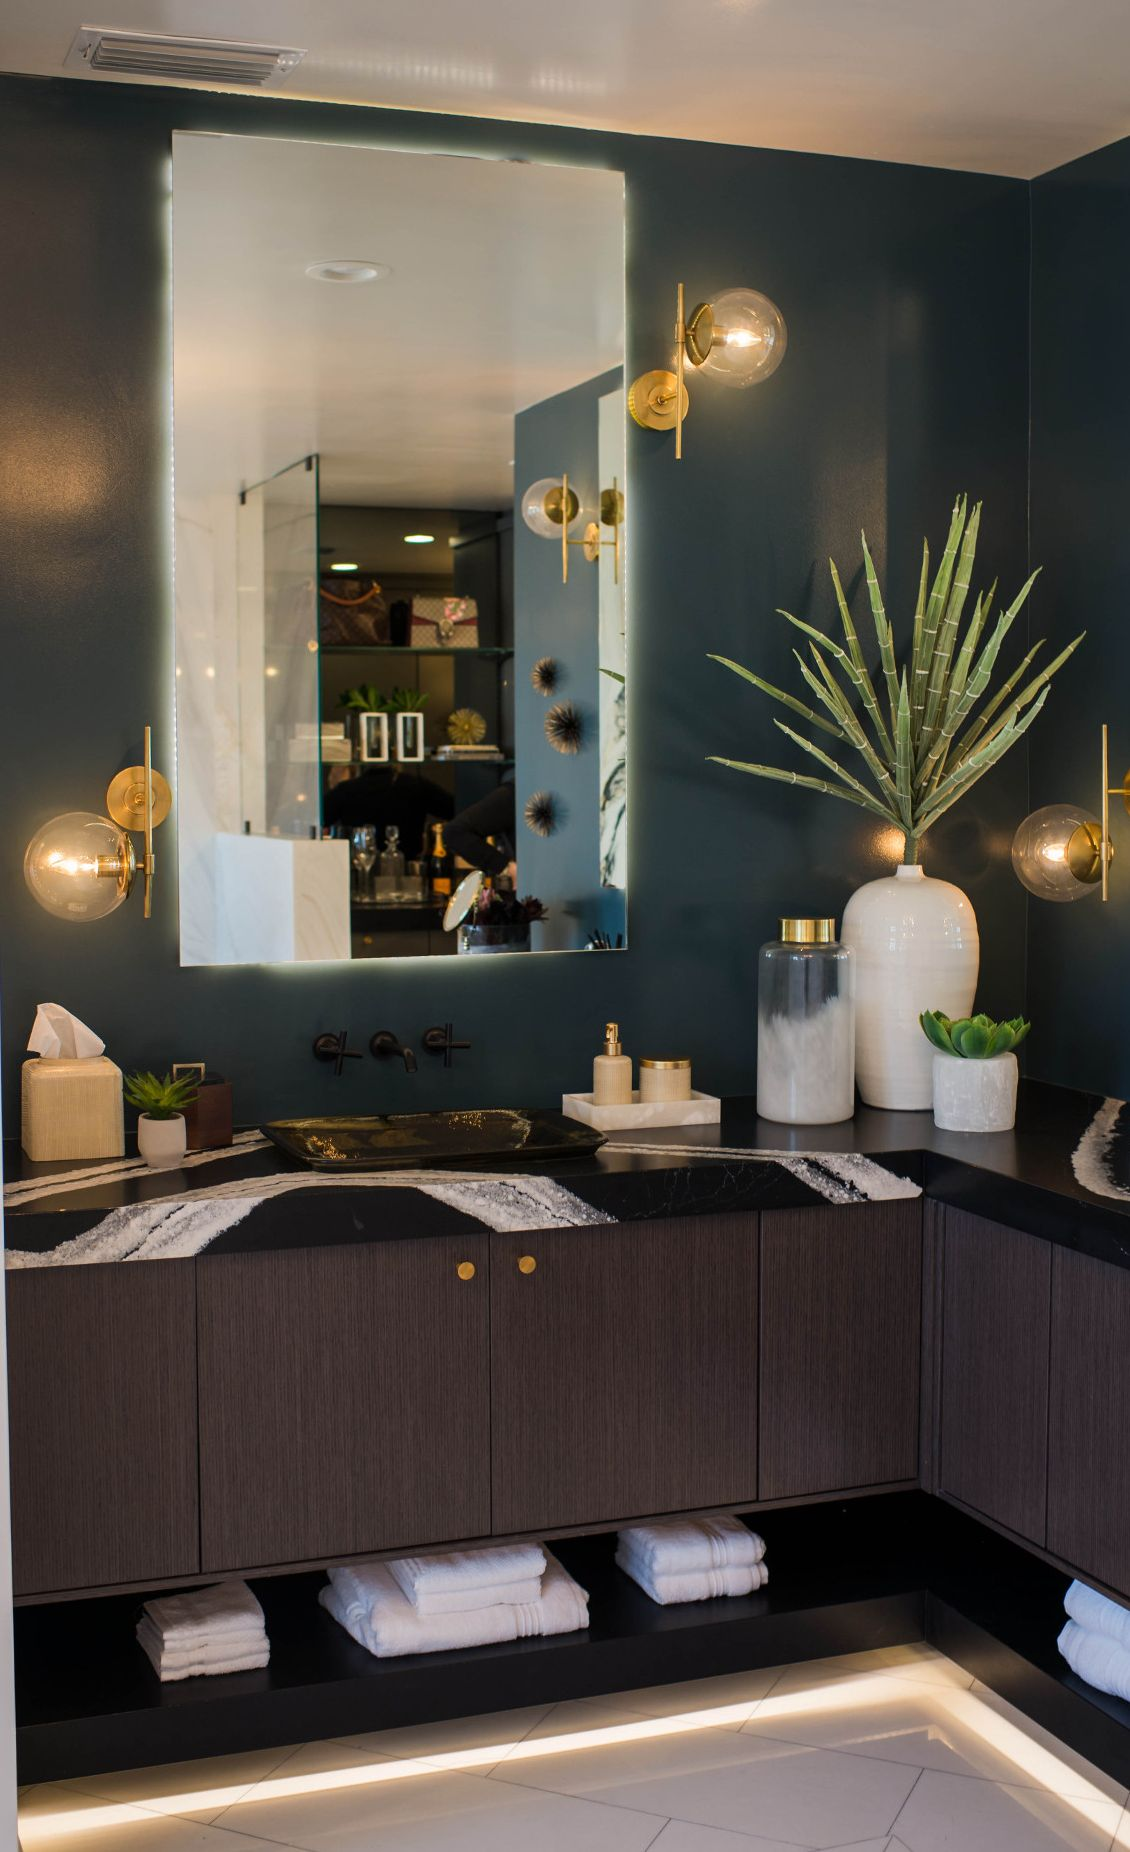 Brass sconces lend an intriguing, bubble-like quality to the space. Space featuring Cambria Mersey and Blackpool Matte